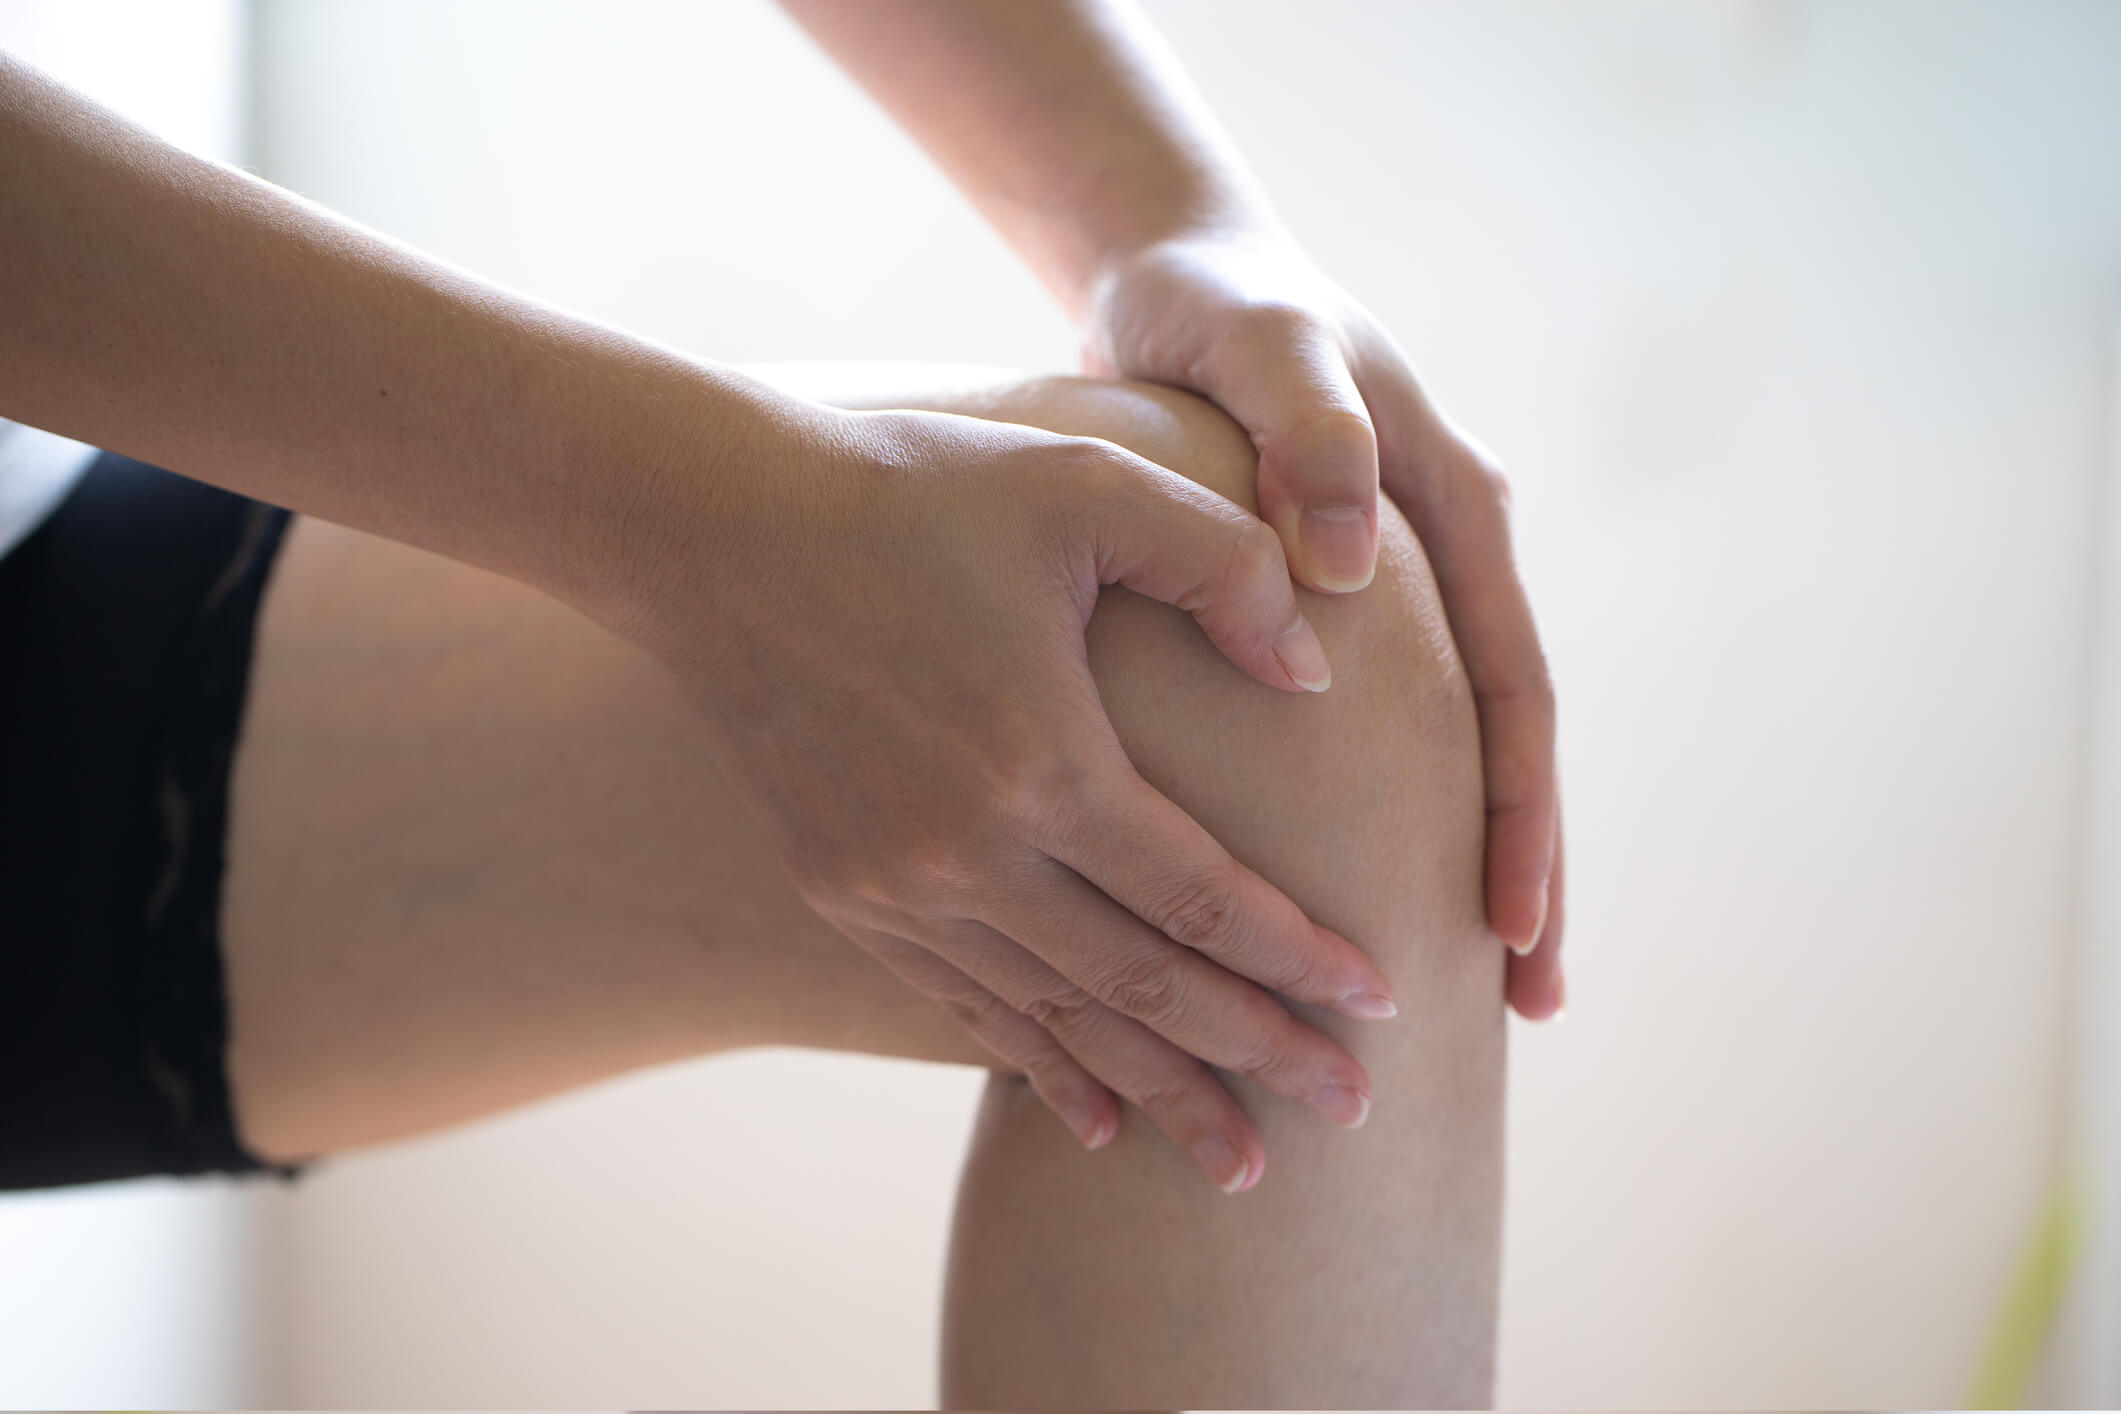 One of the largest stem cell trials could bring hope to osteoarthritis sufferers